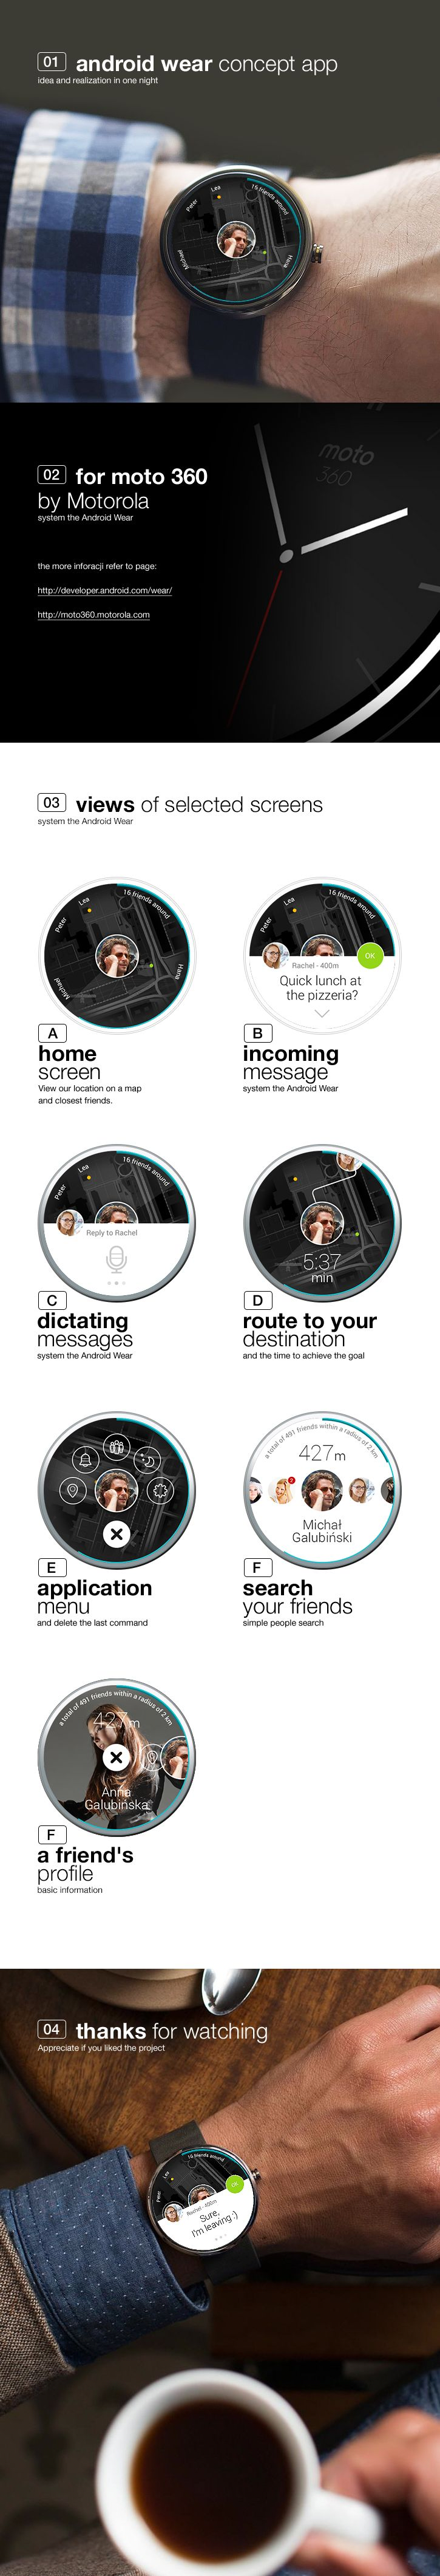 more: https://www.behance.net/gallery/application-concept-for-android-wear/15504967